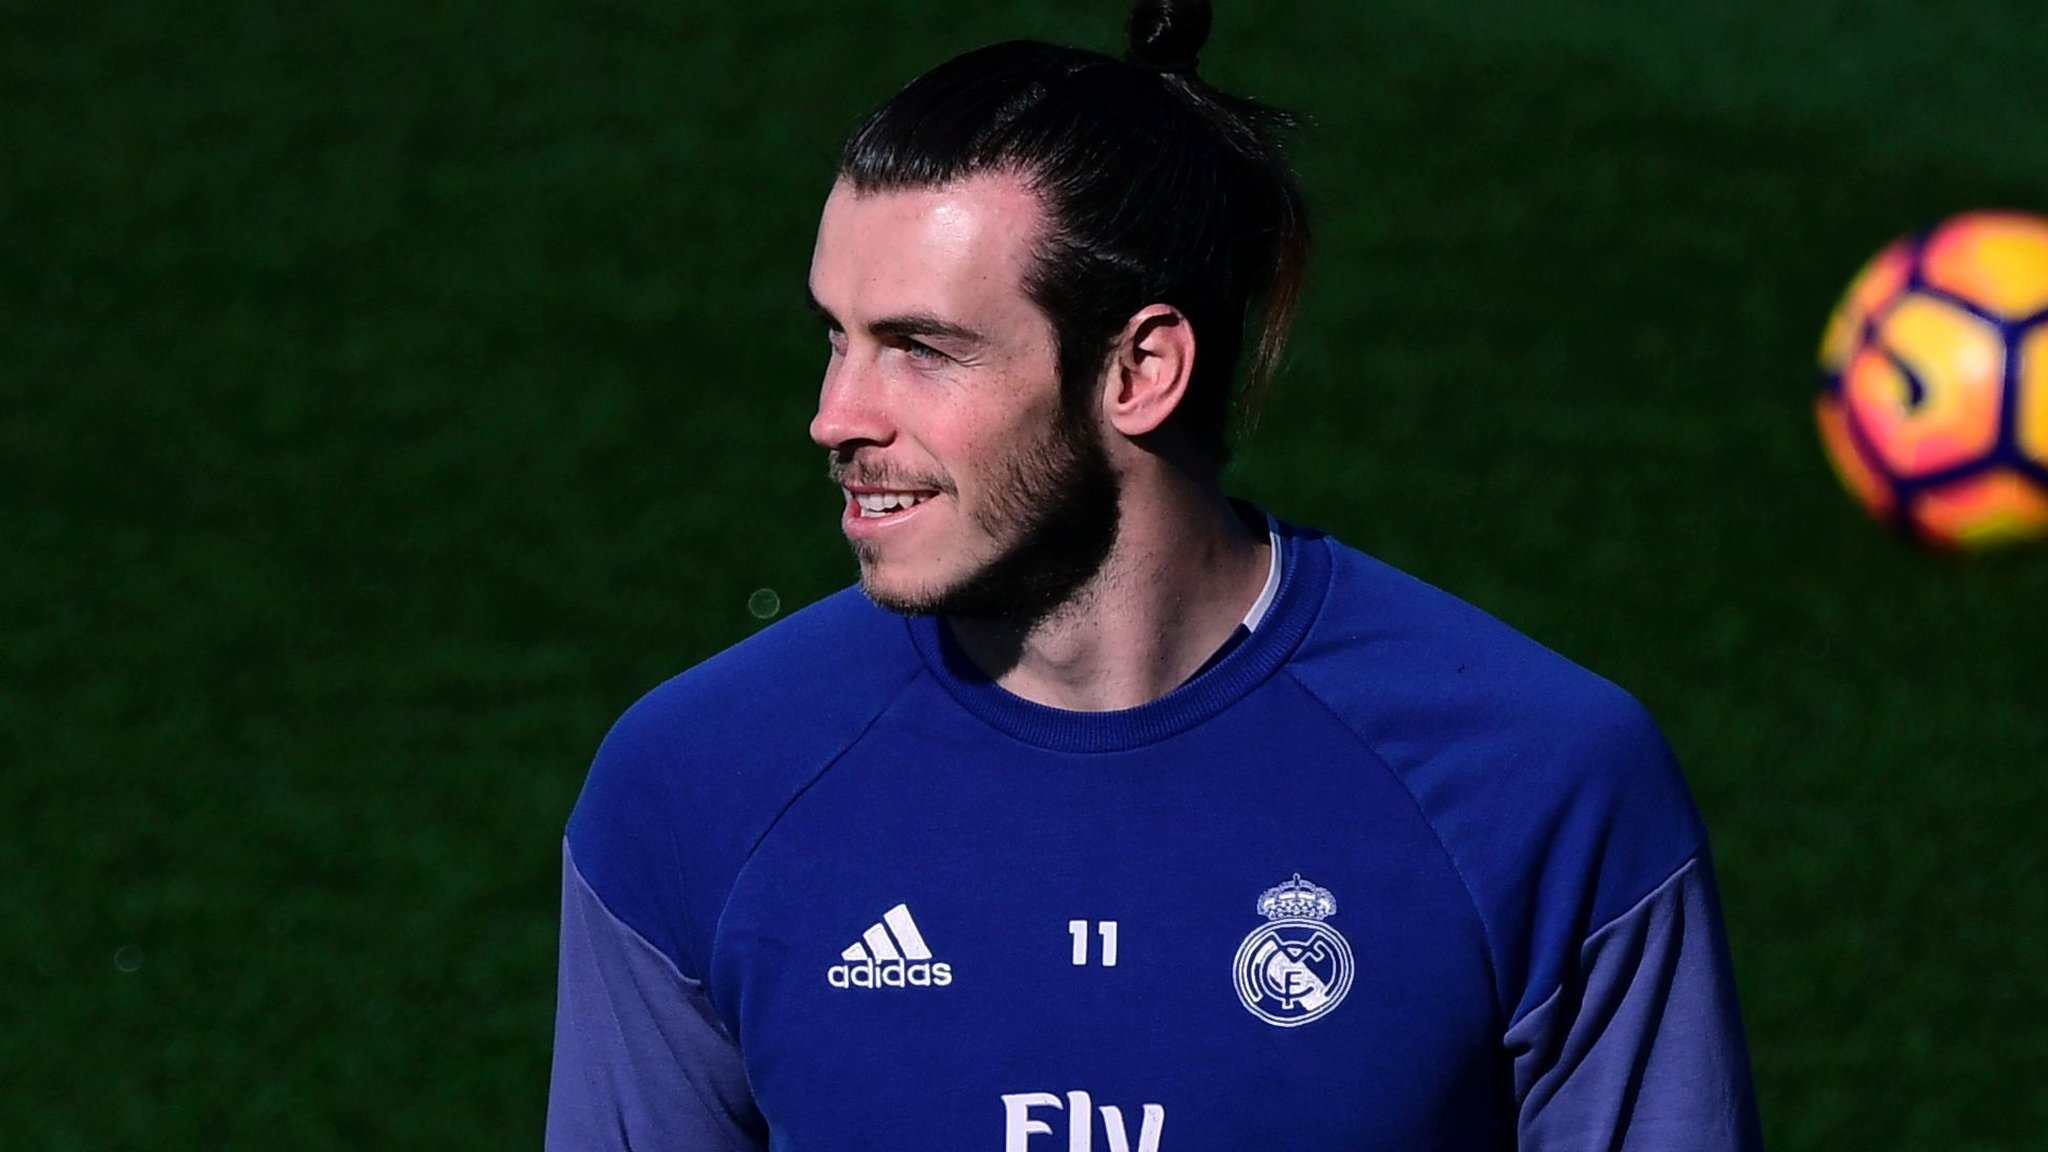 Gareth Bale: Real Madrid and Wales forward set to return from ankle injury